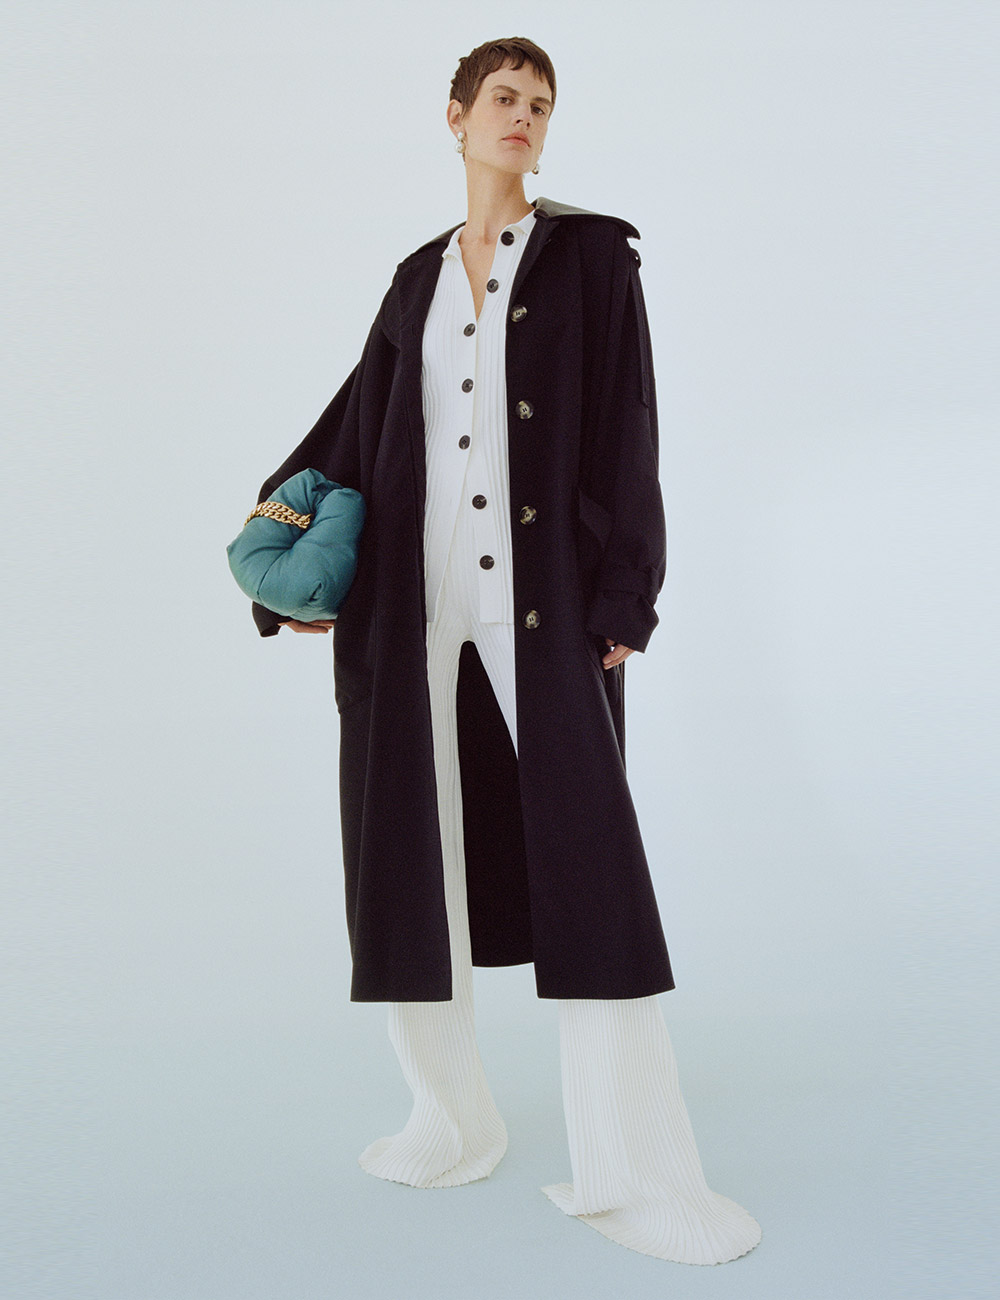 SS21 Look 6: Black Coat with white knit top and pant with blue bag